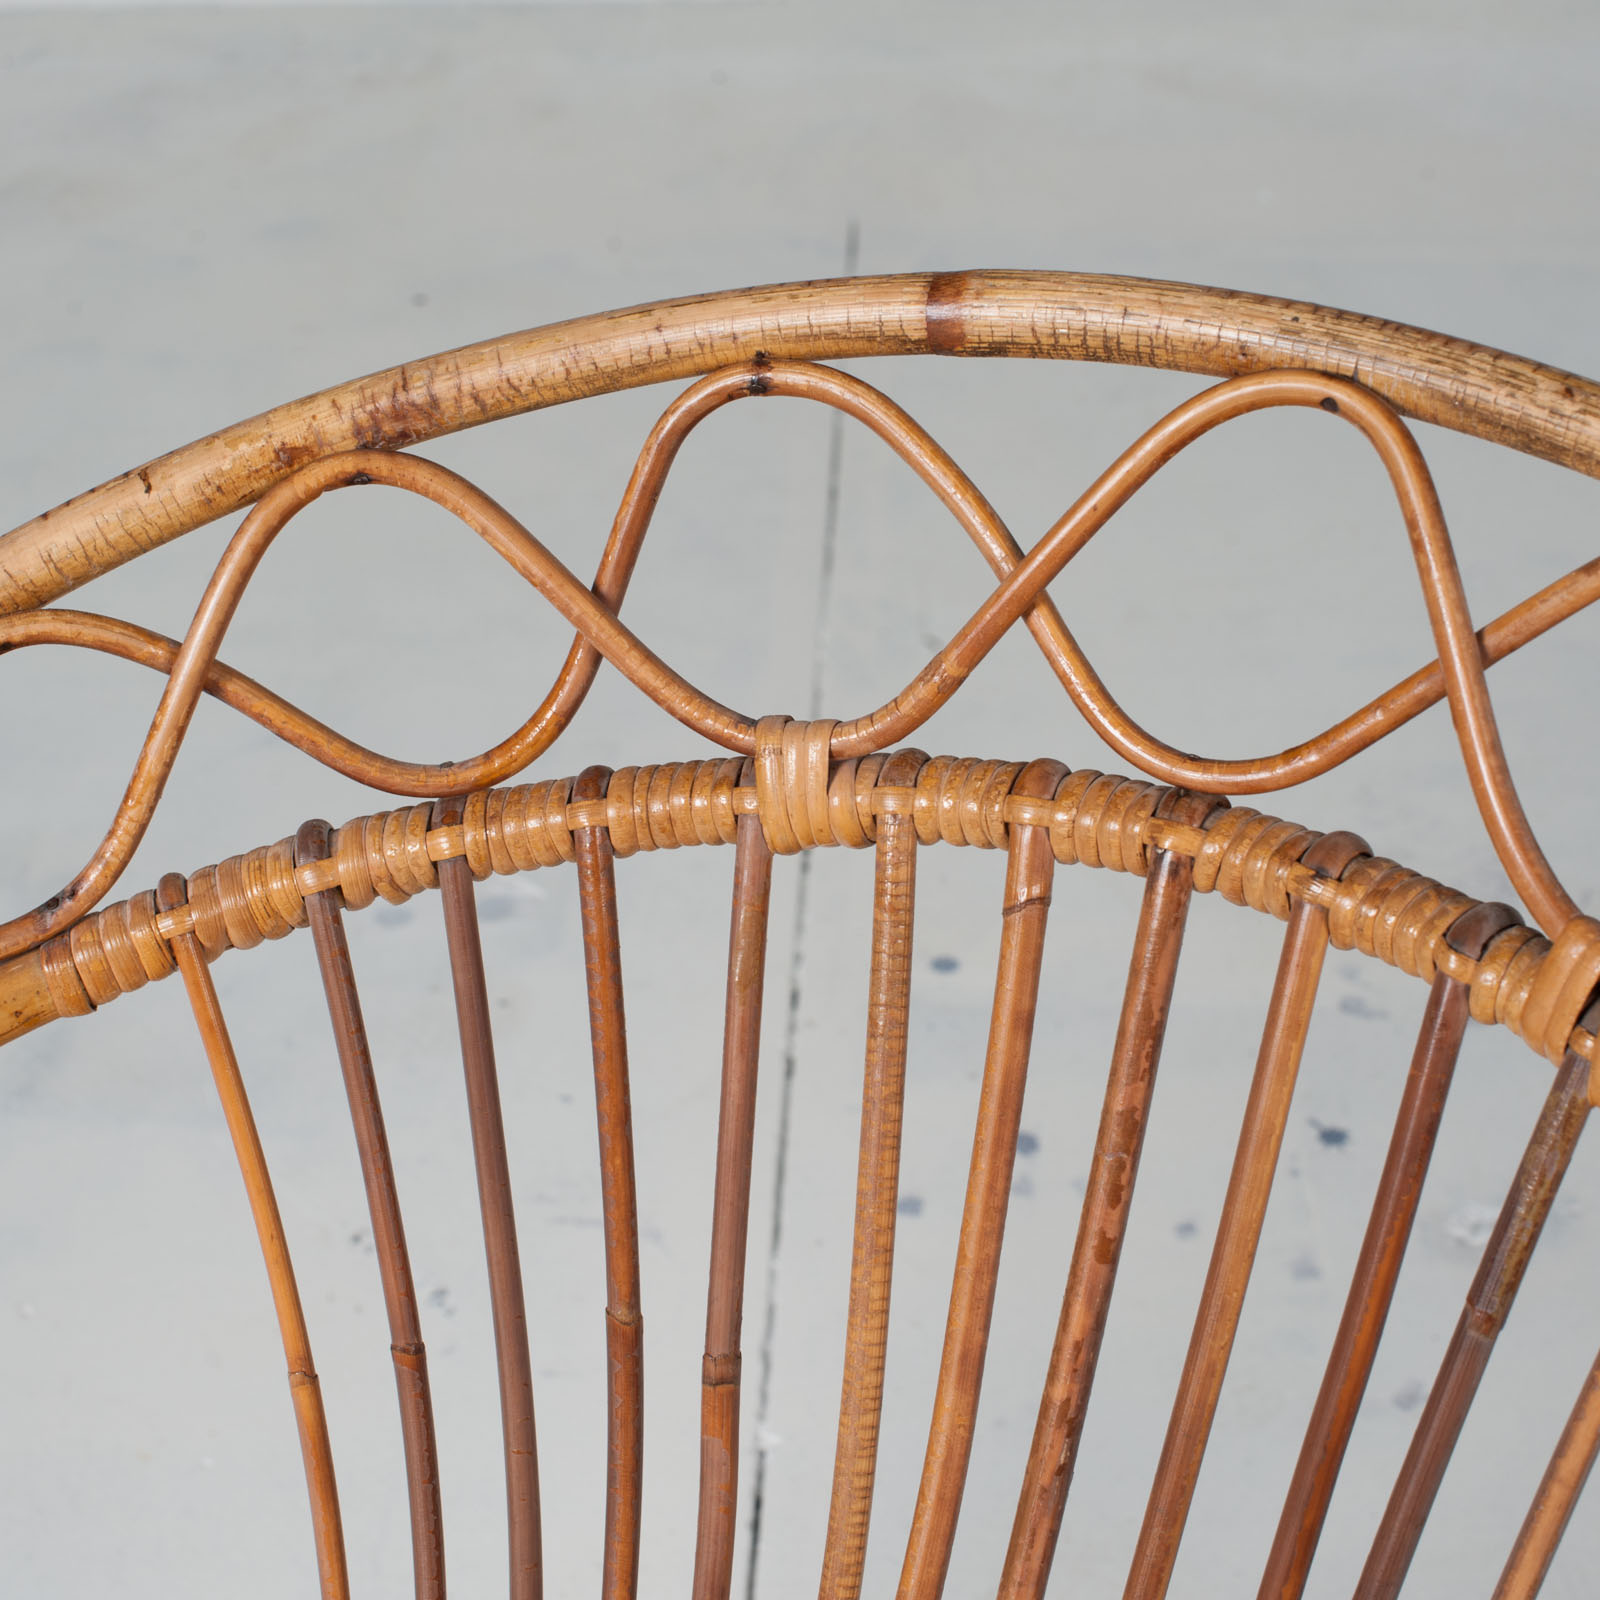 Rattan Lounge Chair By Rohe Noordwolde 1960s Netherlands 05